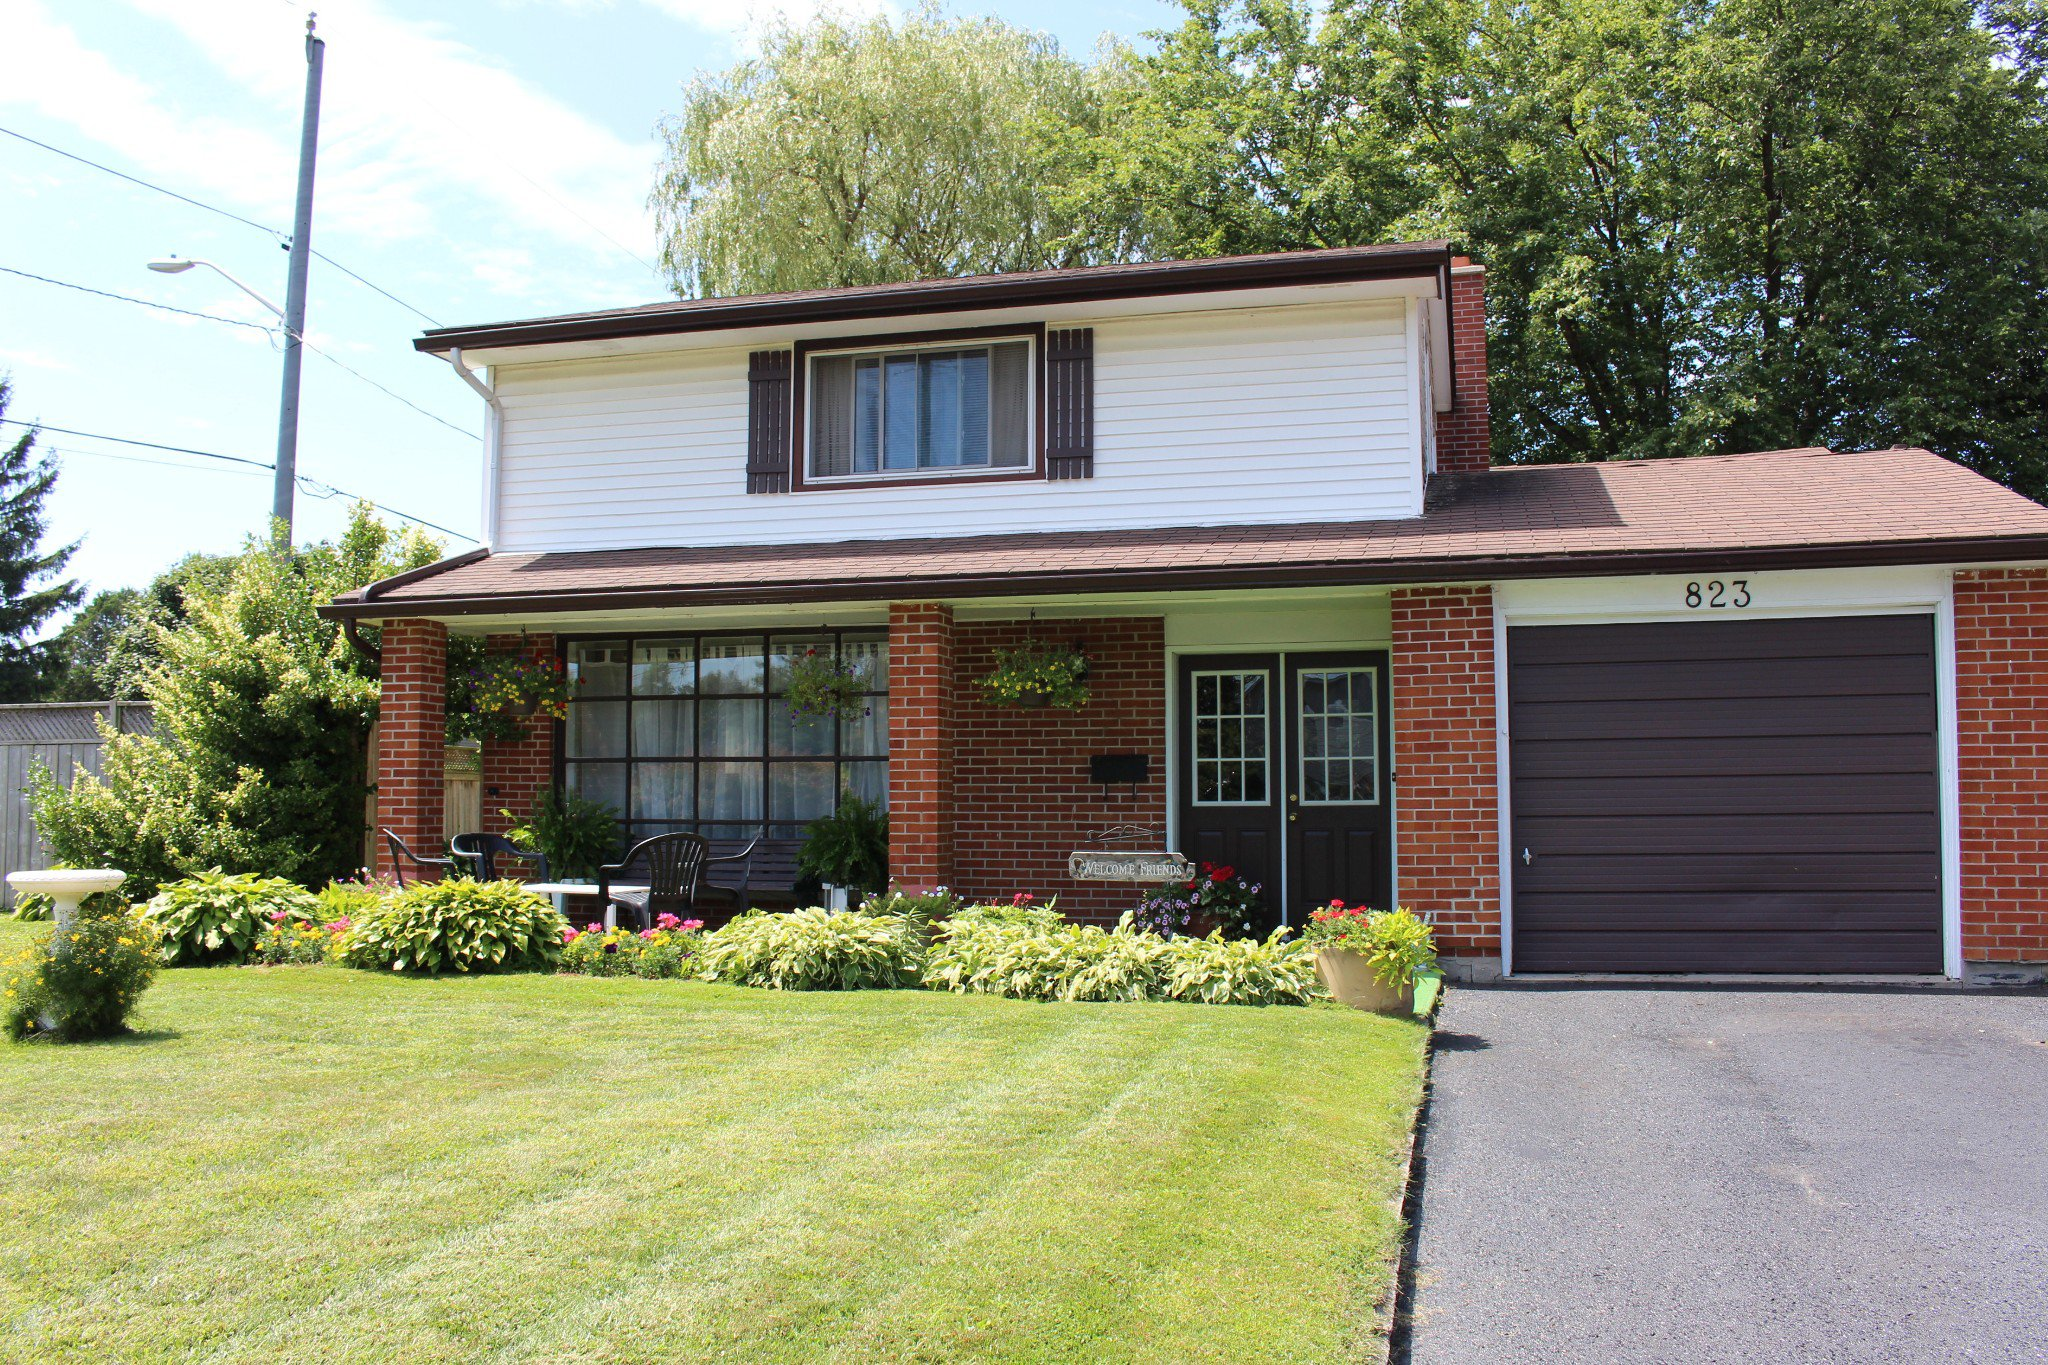 Main Photo: 823 Murray Crescent in Cobourg: Residential Detached for sale : MLS®# 219861